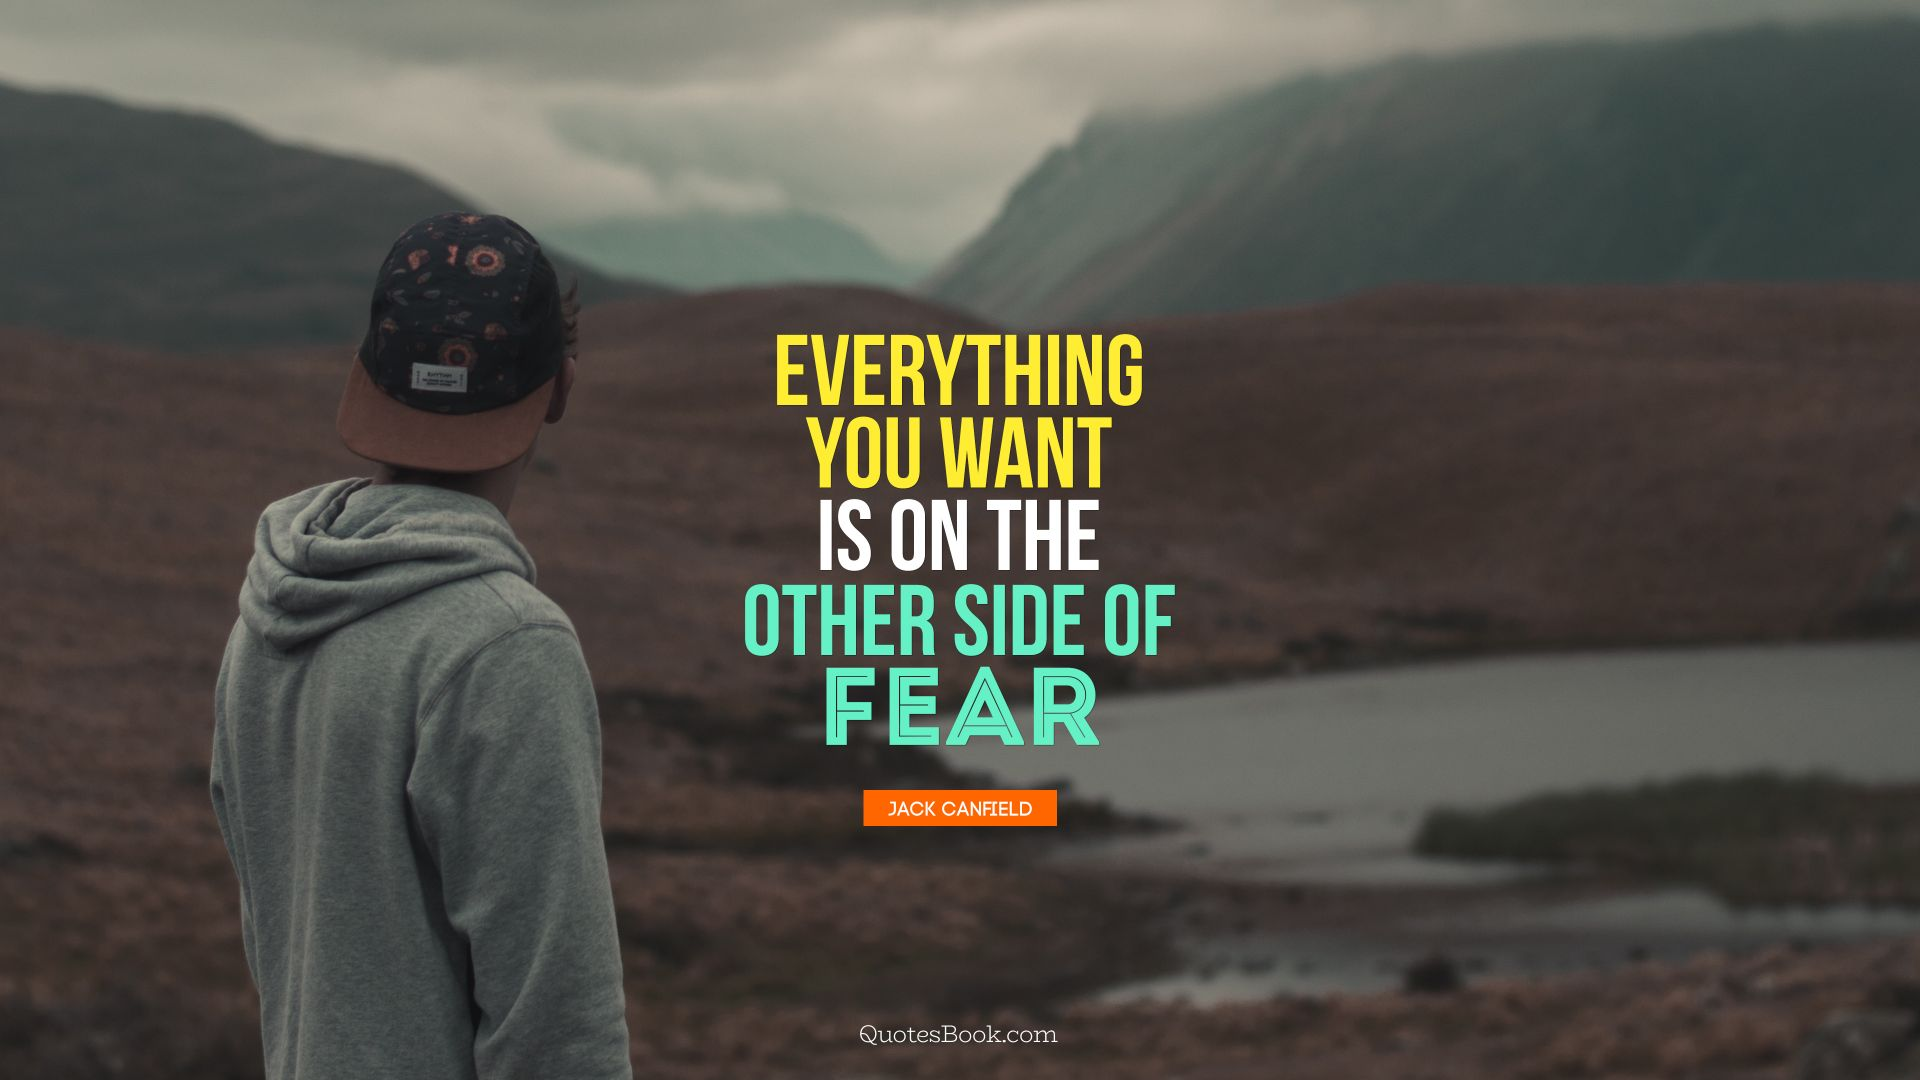 Everything you want is on the other side of fear. - Quote by Jack Canfield